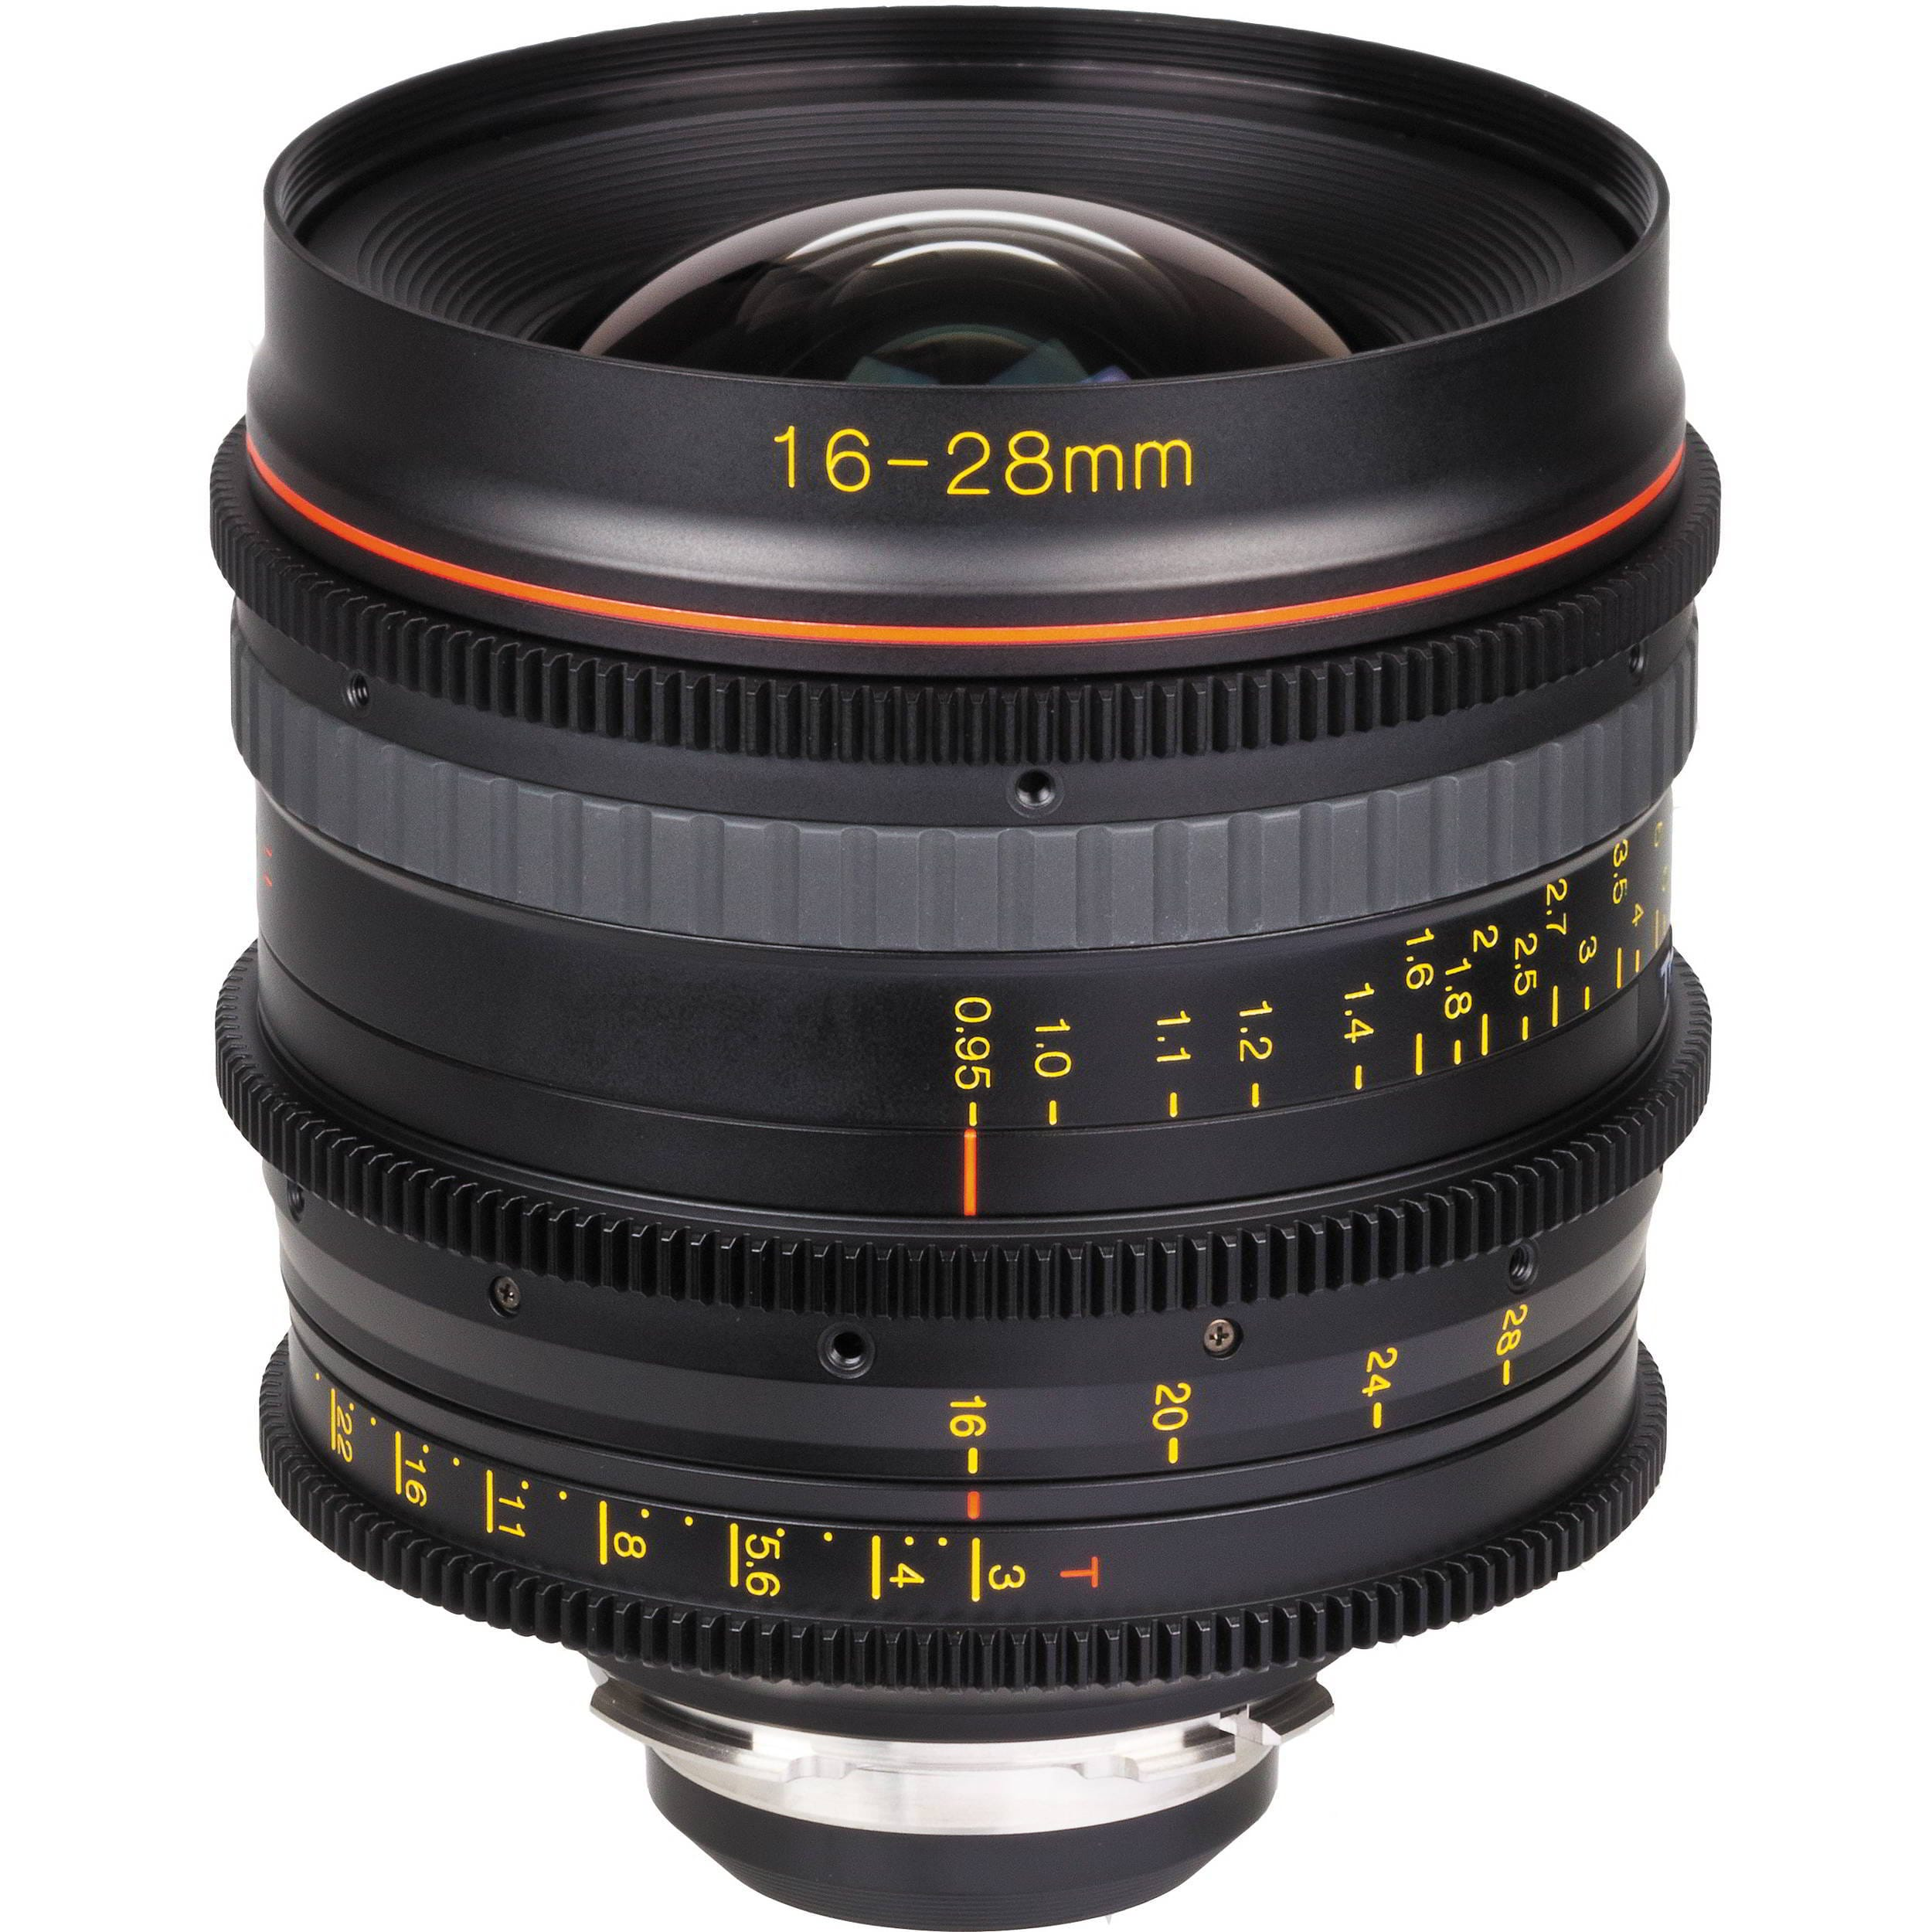 AT-X 16-28mm T3 CANON